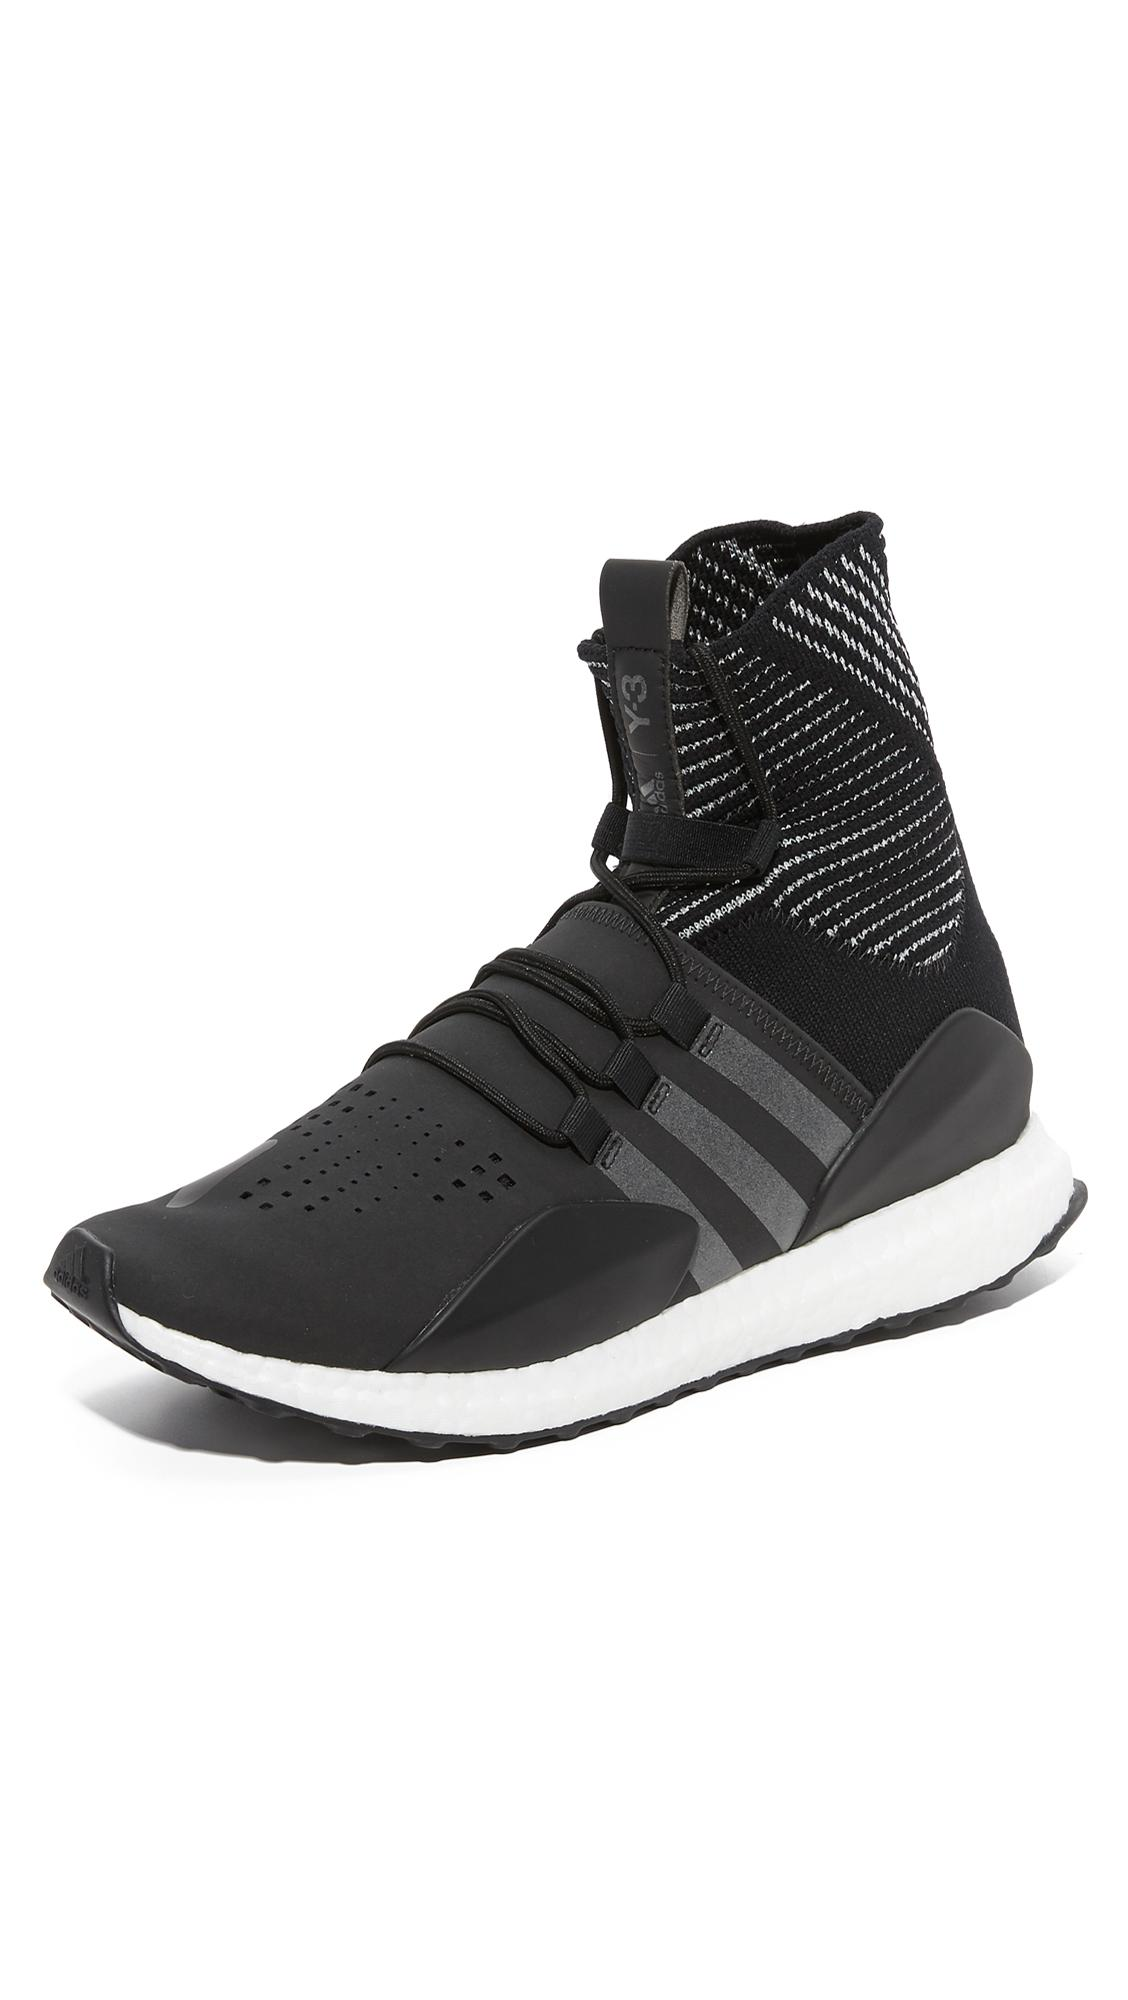 c426fbcce Lyst - Y-3 Y-3s Approach Reflect Sneakers in Black for Men